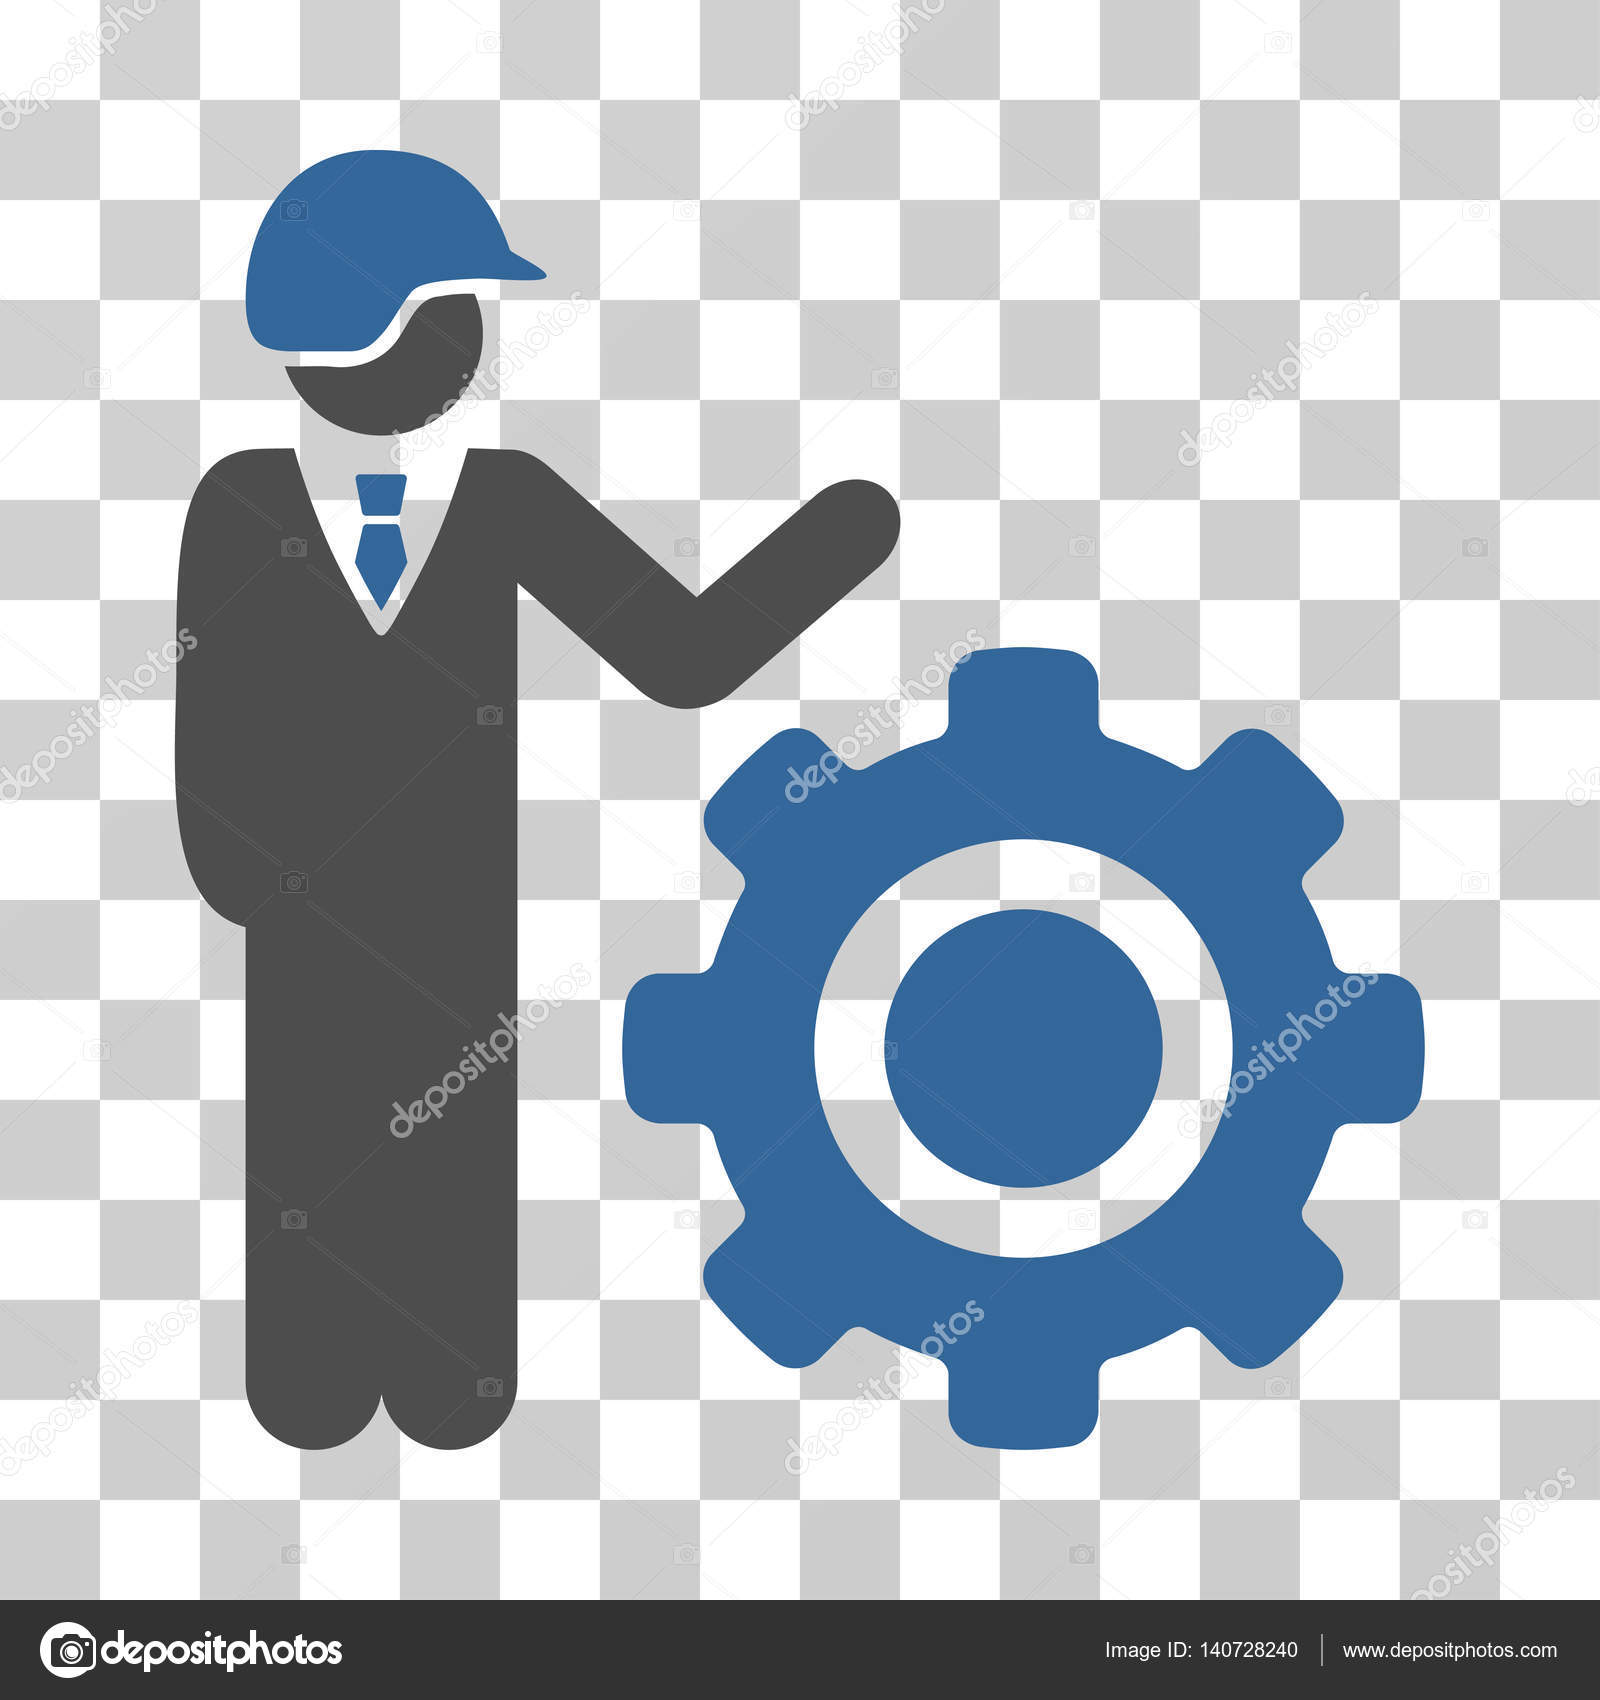 Industrial gear engineer vector icon stock vector ahasoft industrial gear engineer icon vector illustration style is flat iconic bicolor symbol cobalt and gray colors transparent background biocorpaavc